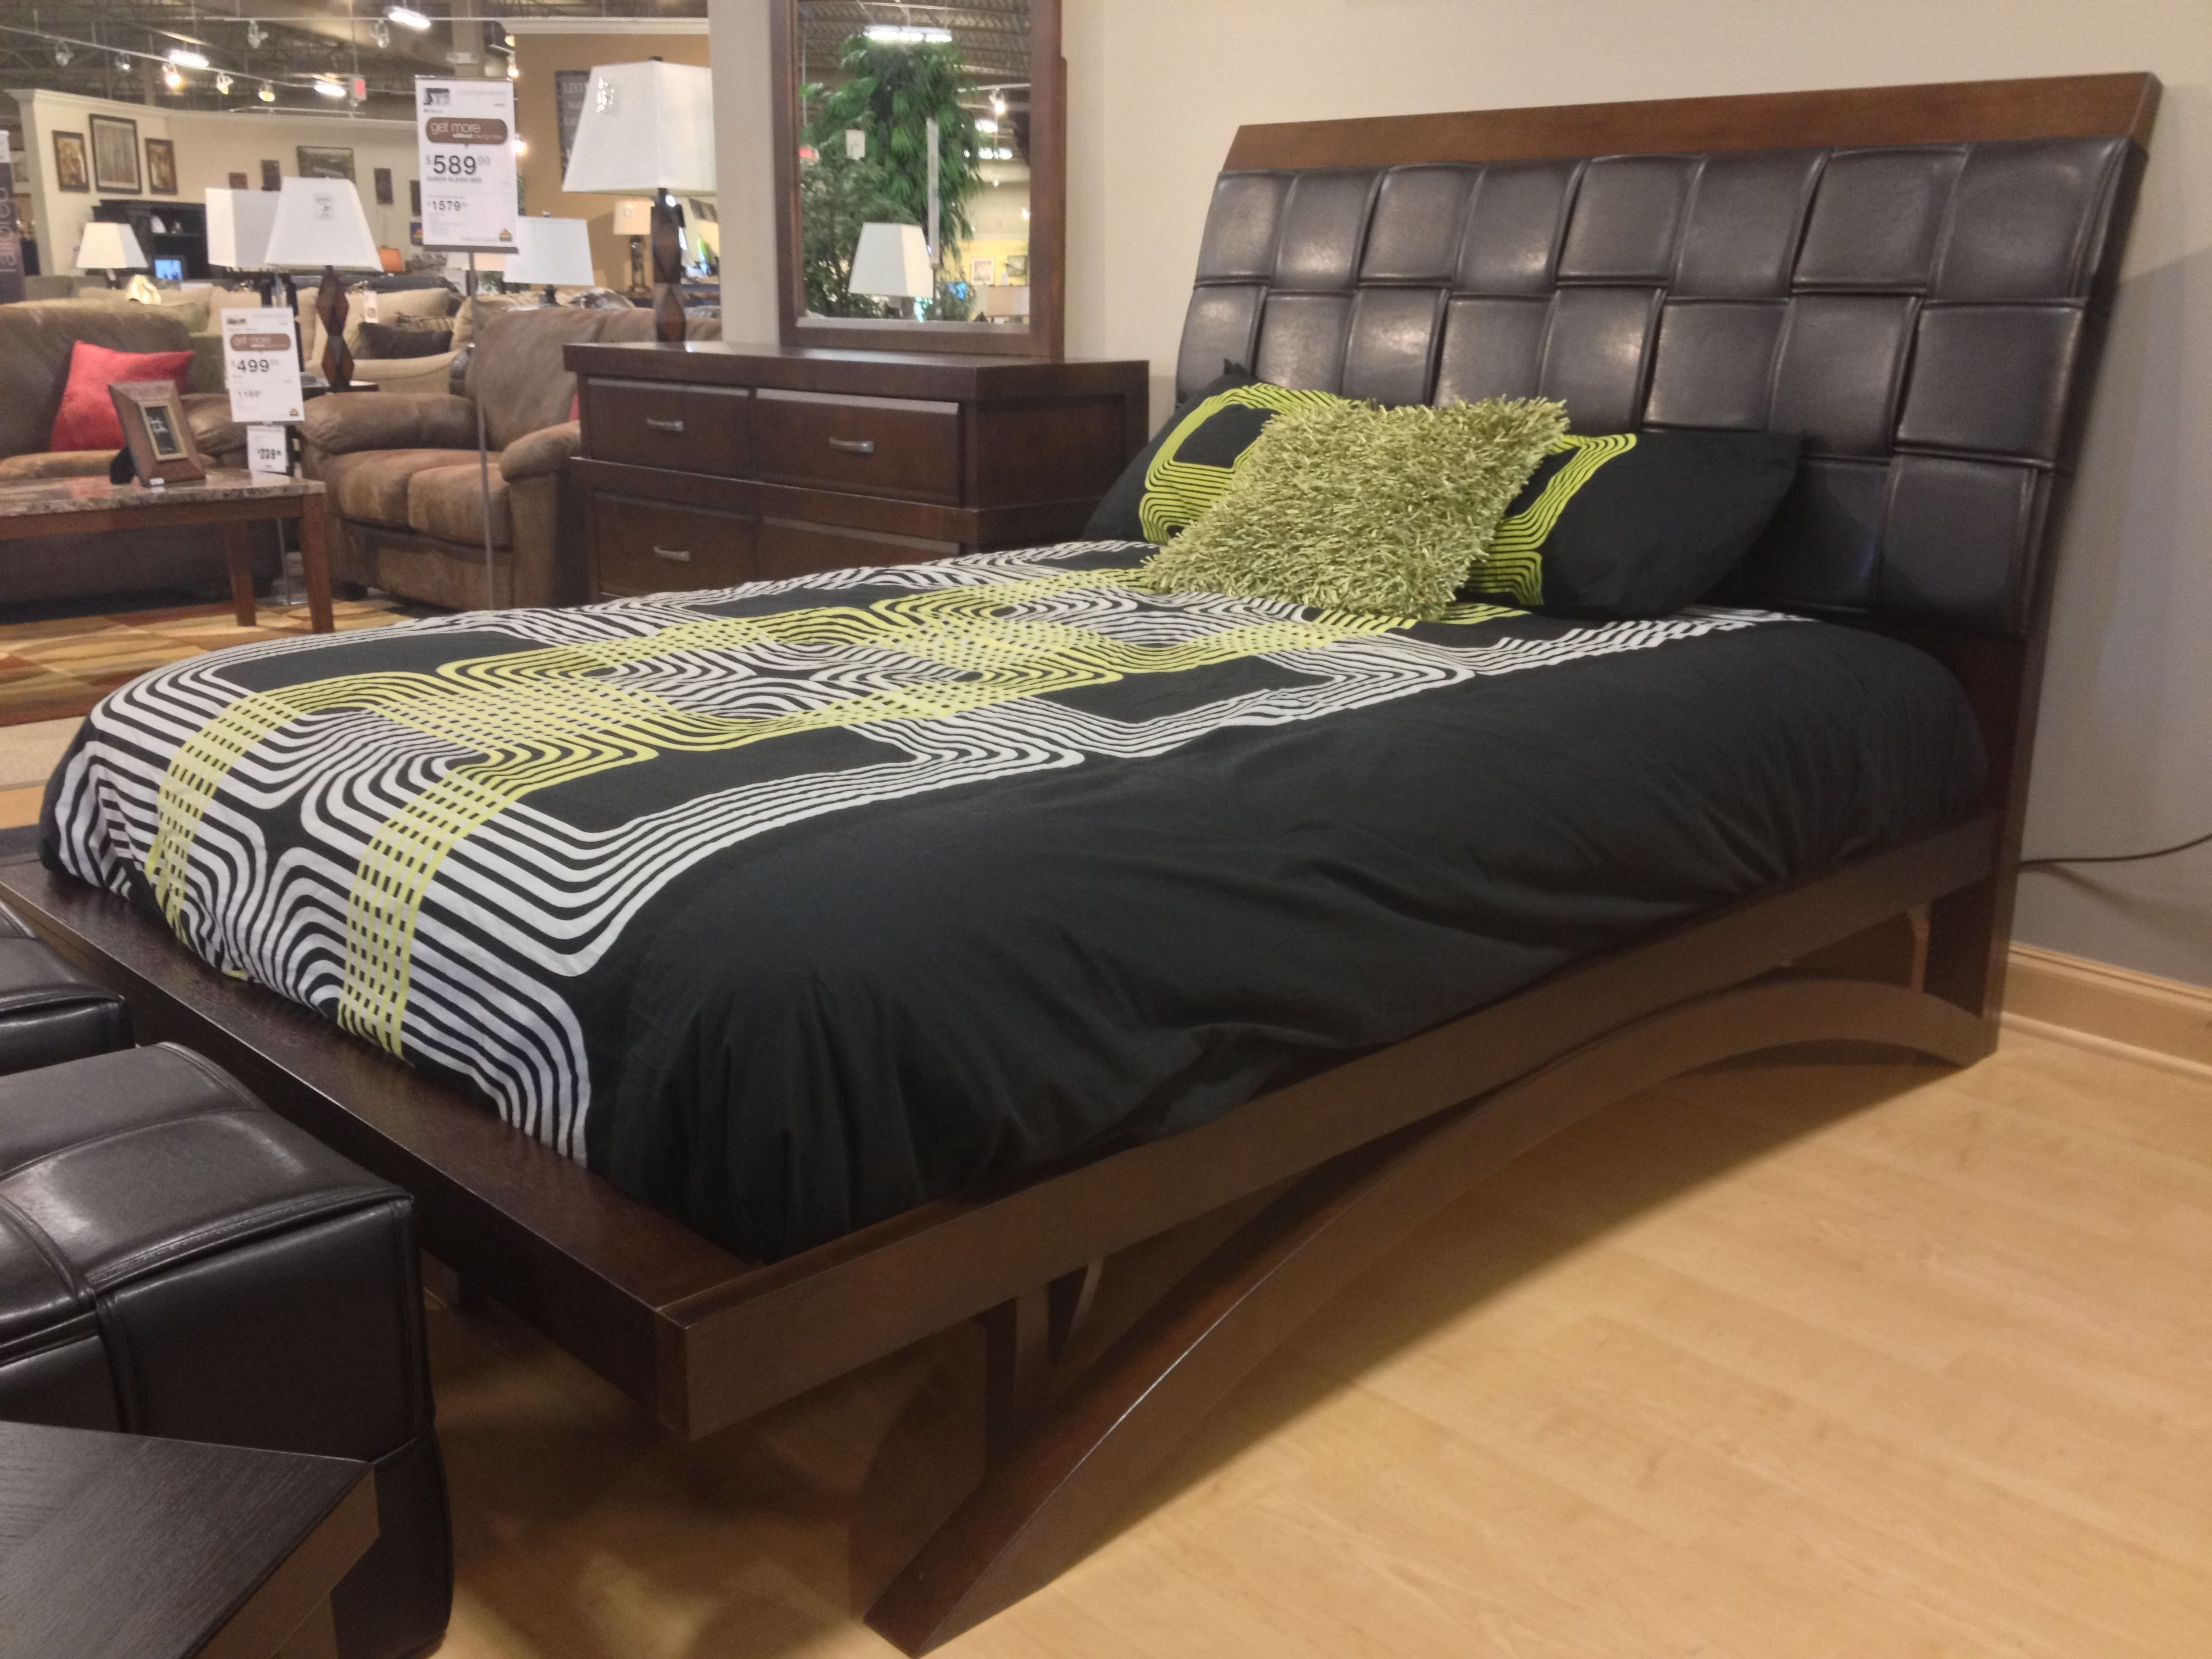 Minburn Queen Sleigh Bed Side View. At Your Ashley #Furniture In Richland, WA #Tricities